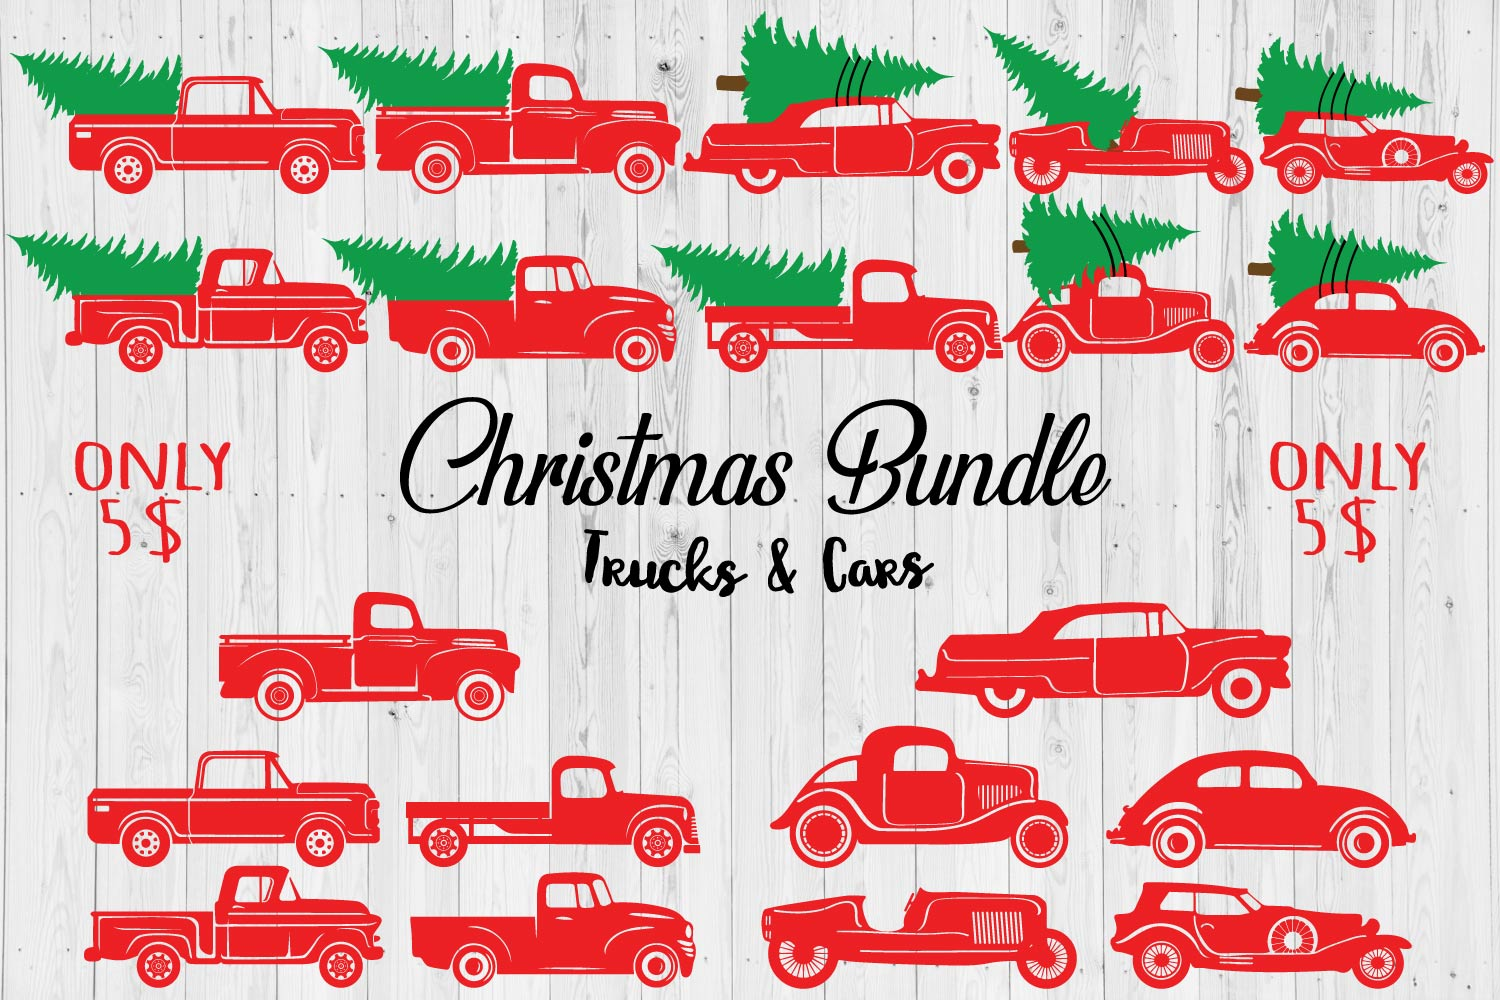 Download Free Christmas Trucks Cars Bundle Graphic By Creativespace for Cricut Explore, Silhouette and other cutting machines.